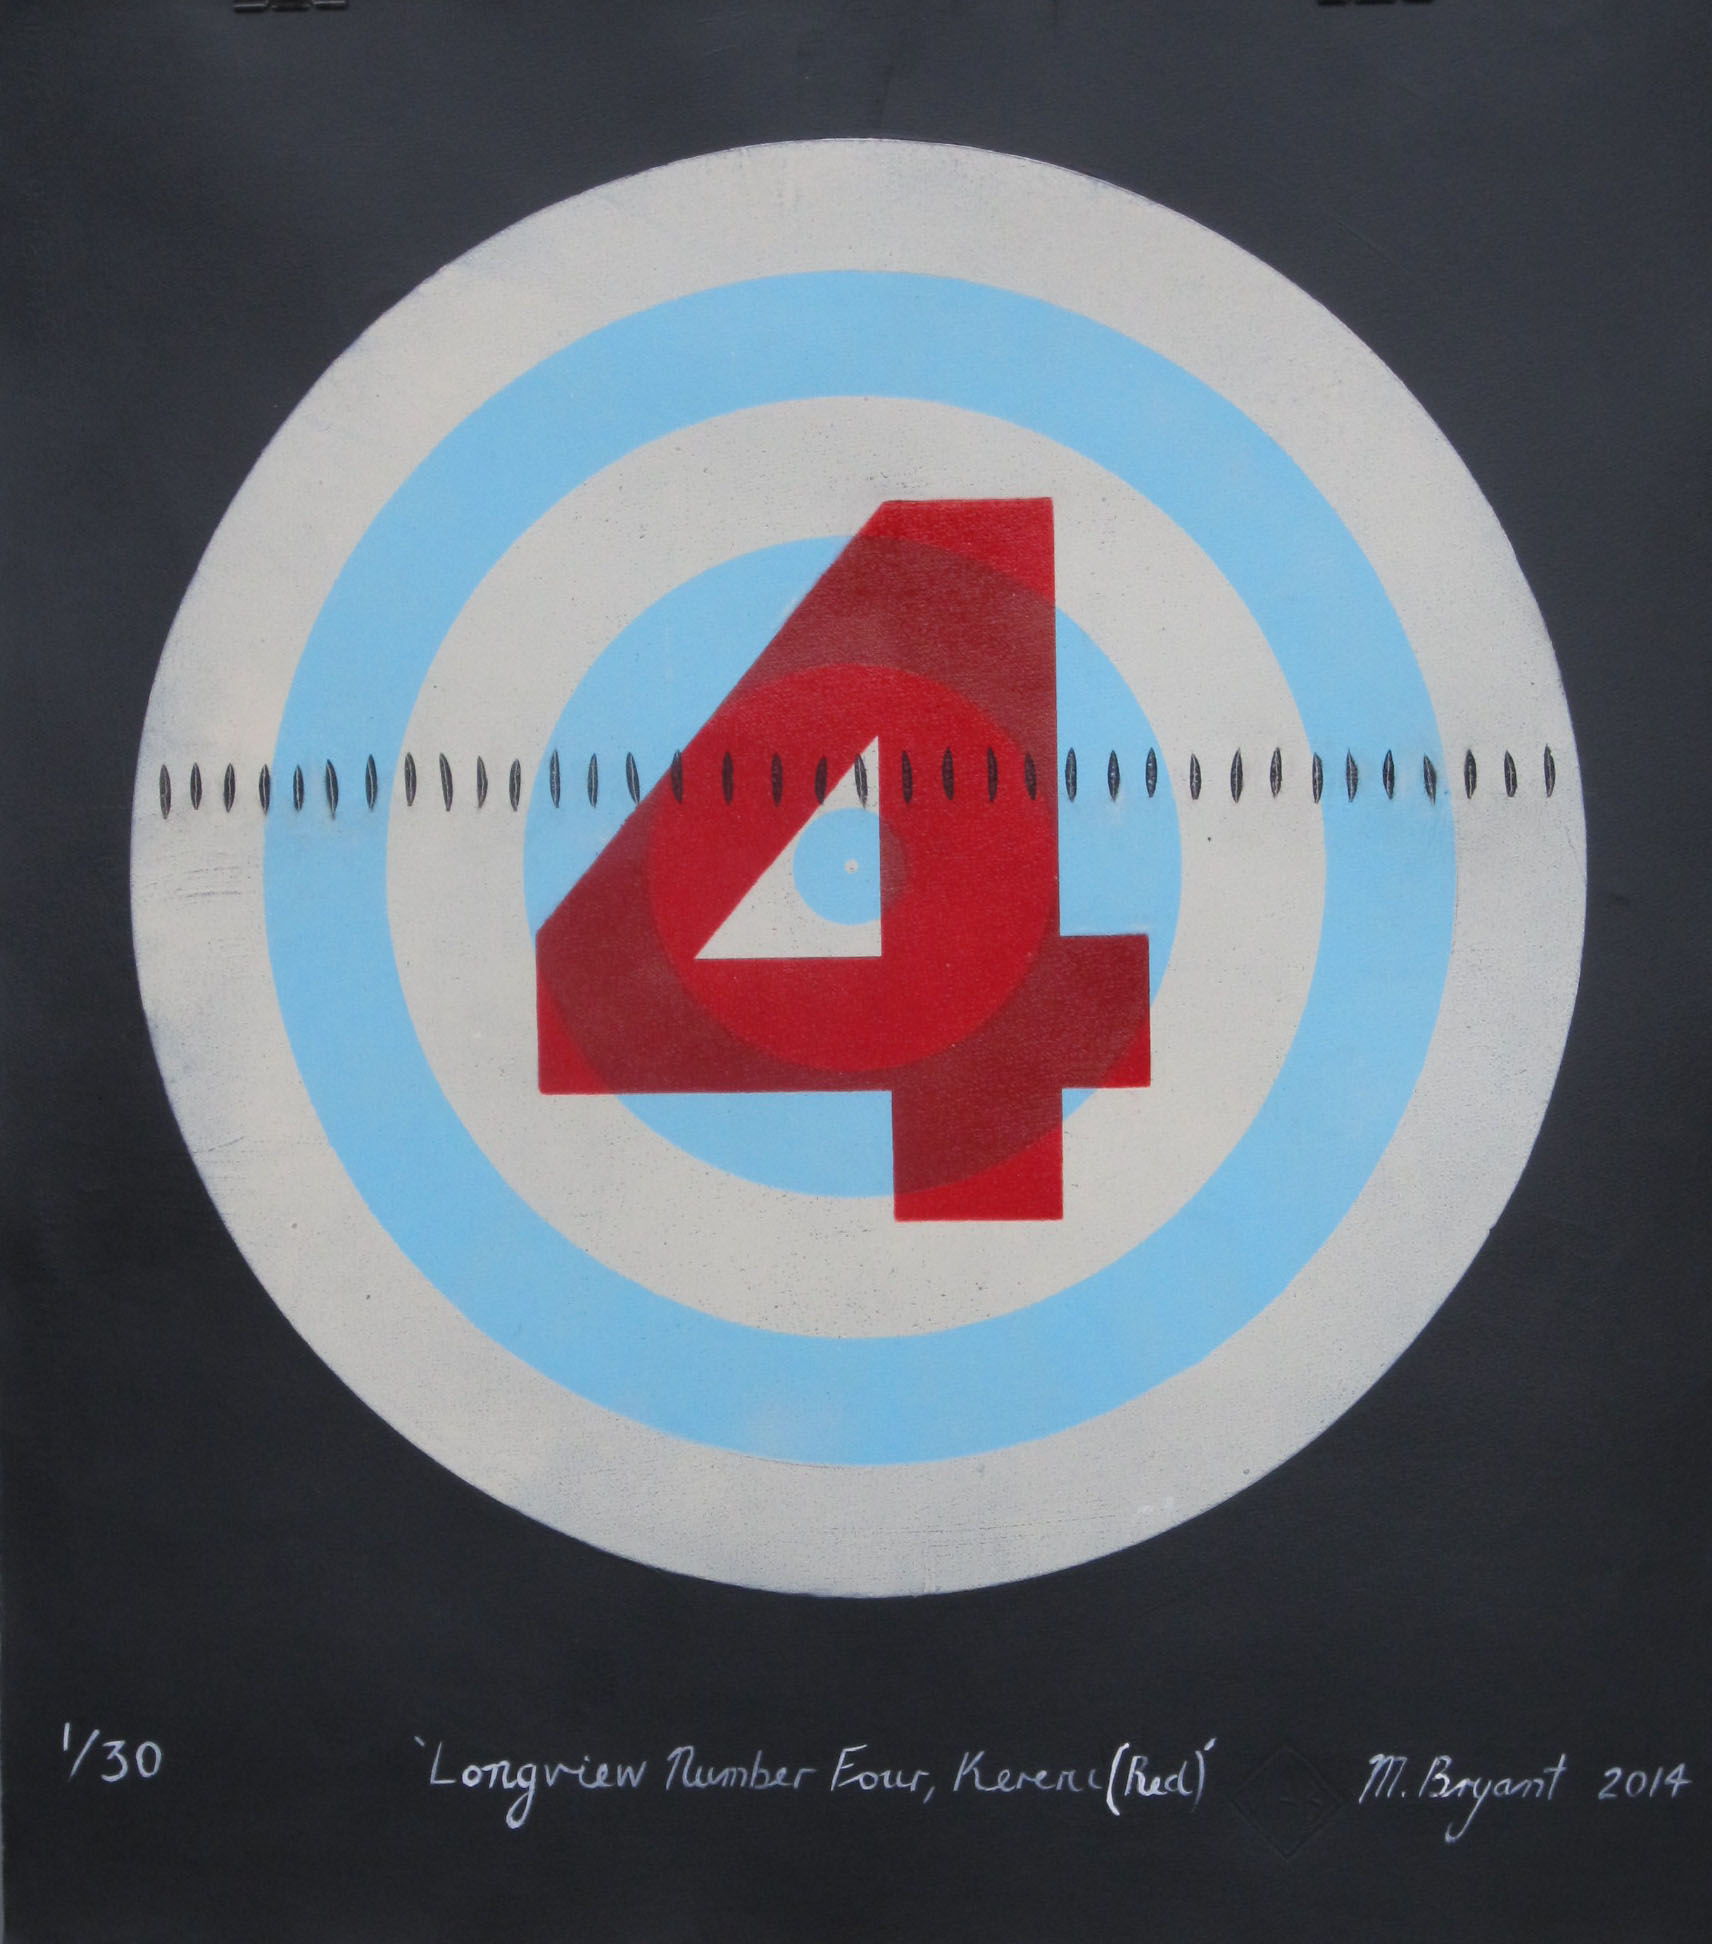 Longview Number Four, Kereru (Red) Michele Bryant 2014 (2)